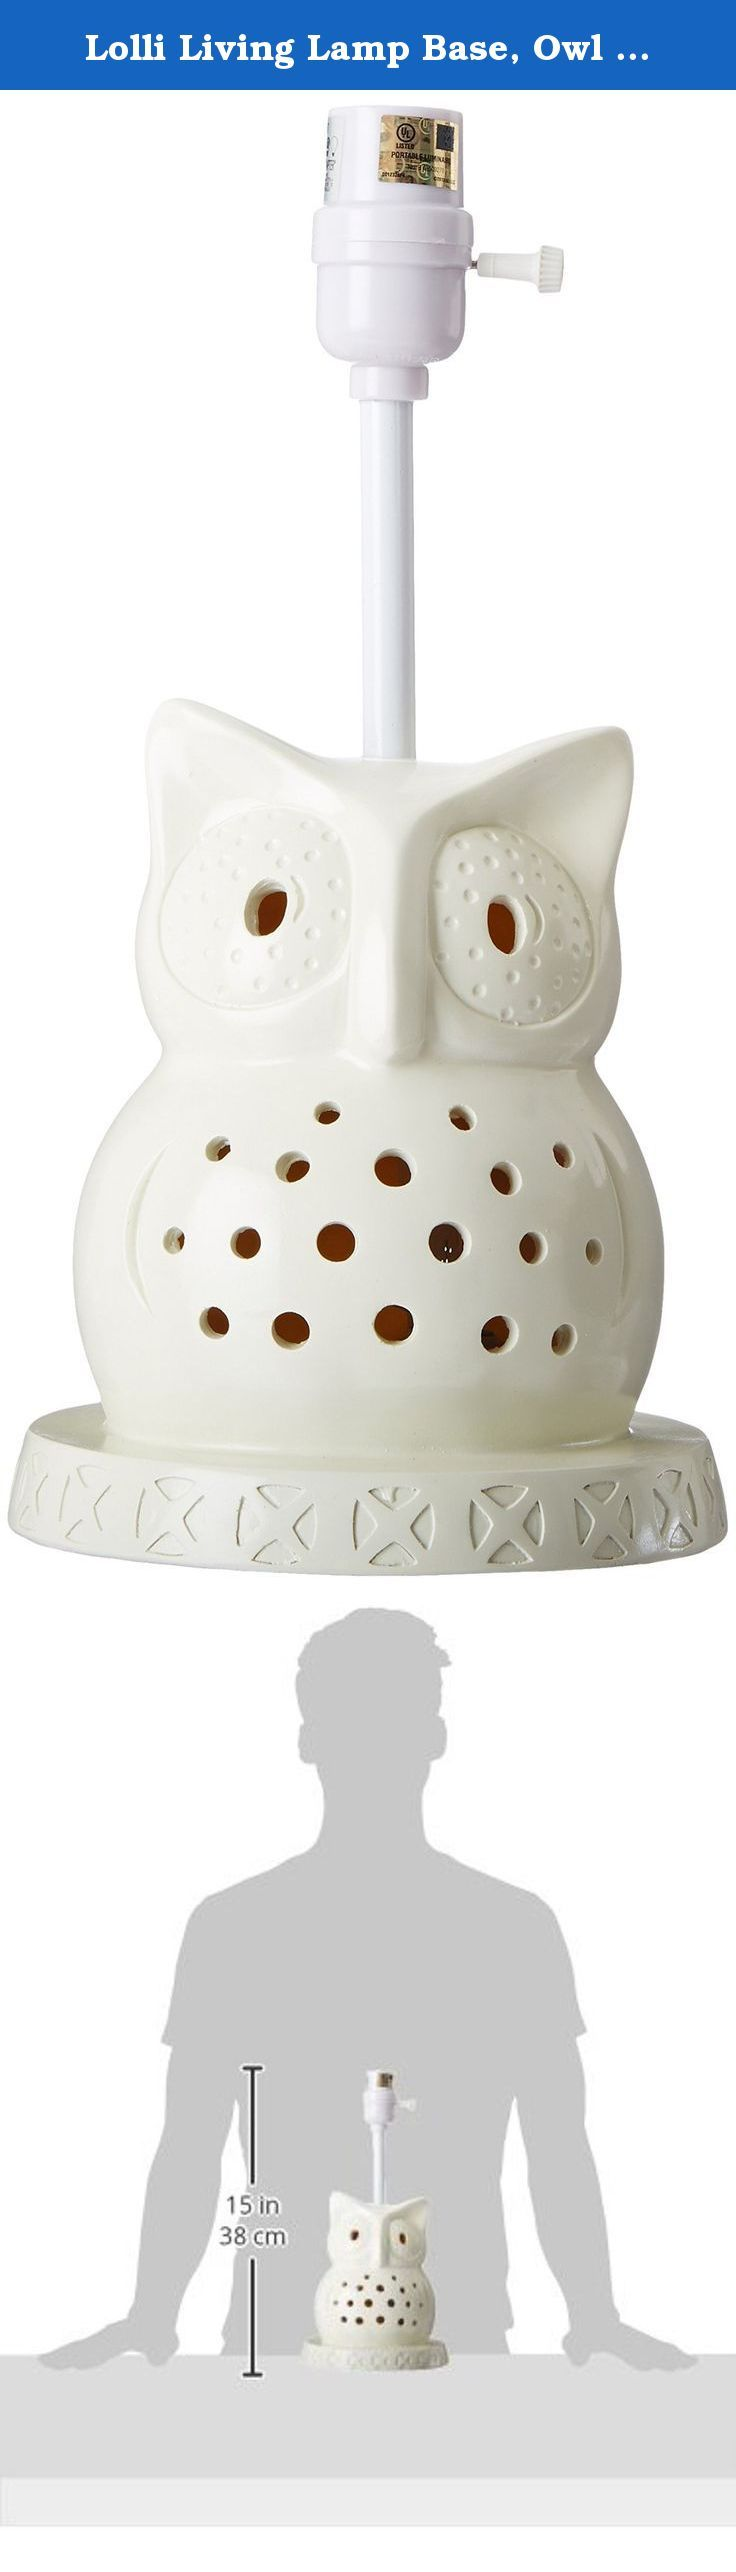 Lolli Living Lamp Base, Owl (Discontinued By Manufacturer). This Owl Lamp  Base